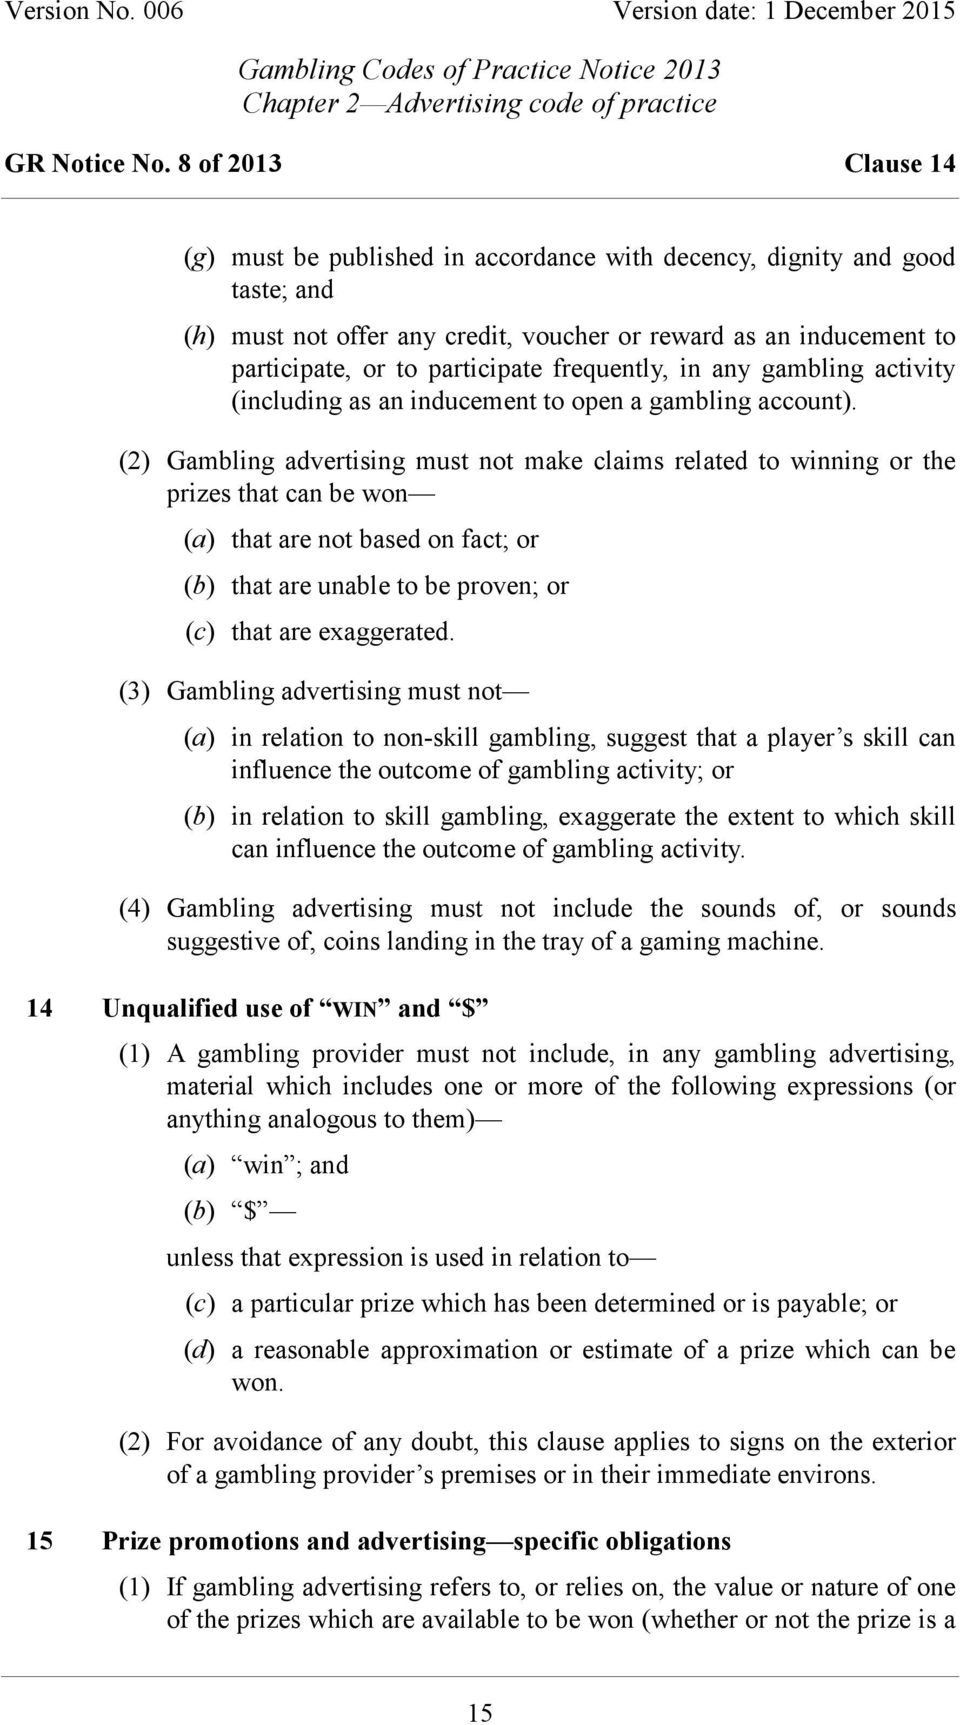 frequently, in any gambling activity (including as an inducement to open a gambling account).